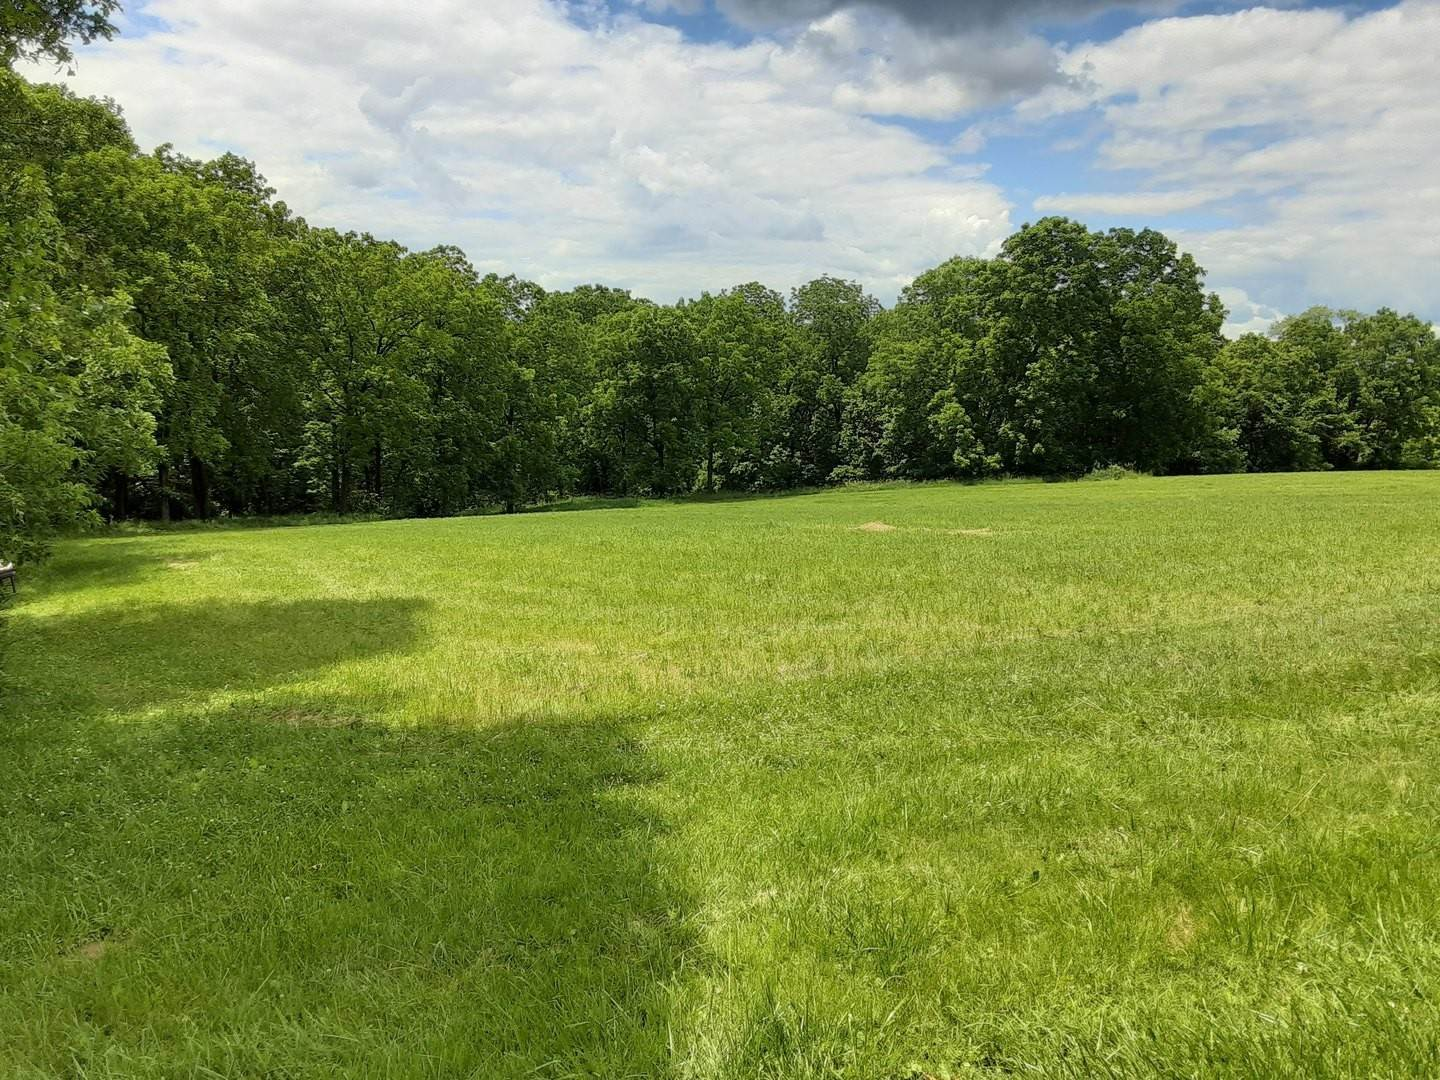 Land for Sale at Lot 5 Meyers Road Mount Carroll, Illinois 61053 United States